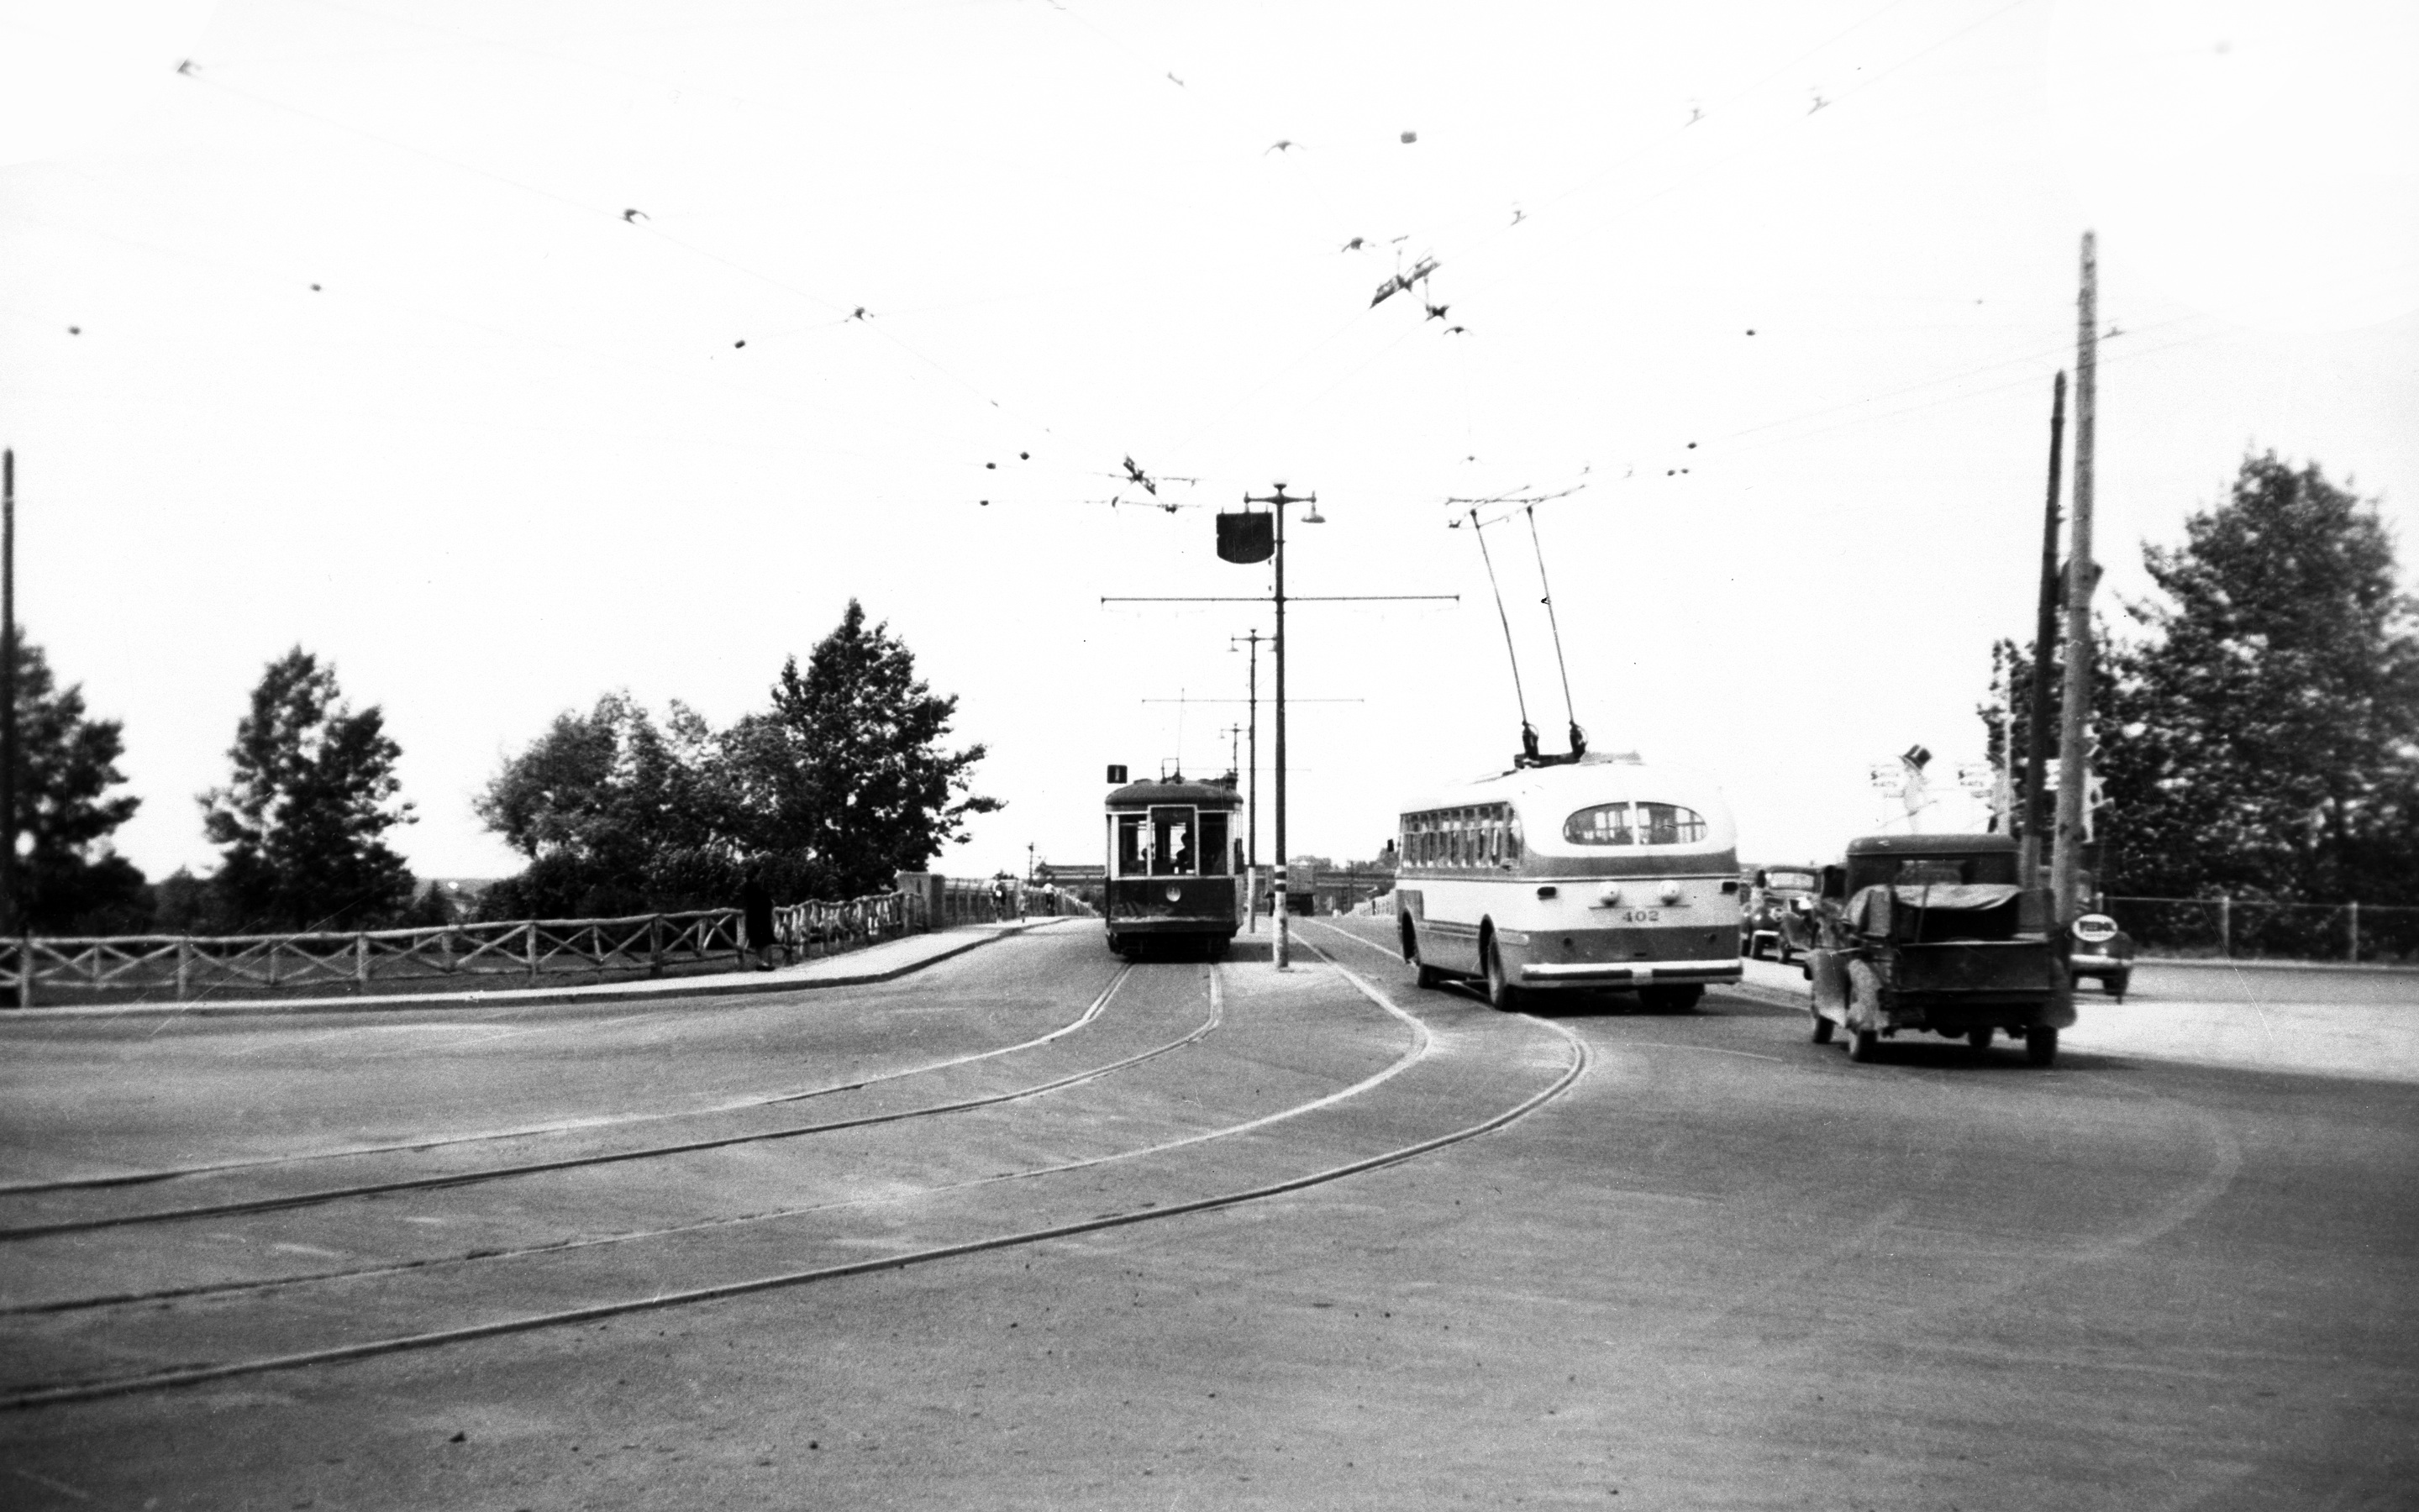 Trolley bus and street railway car on Louise bridge, Calgary, Alberta, 1947